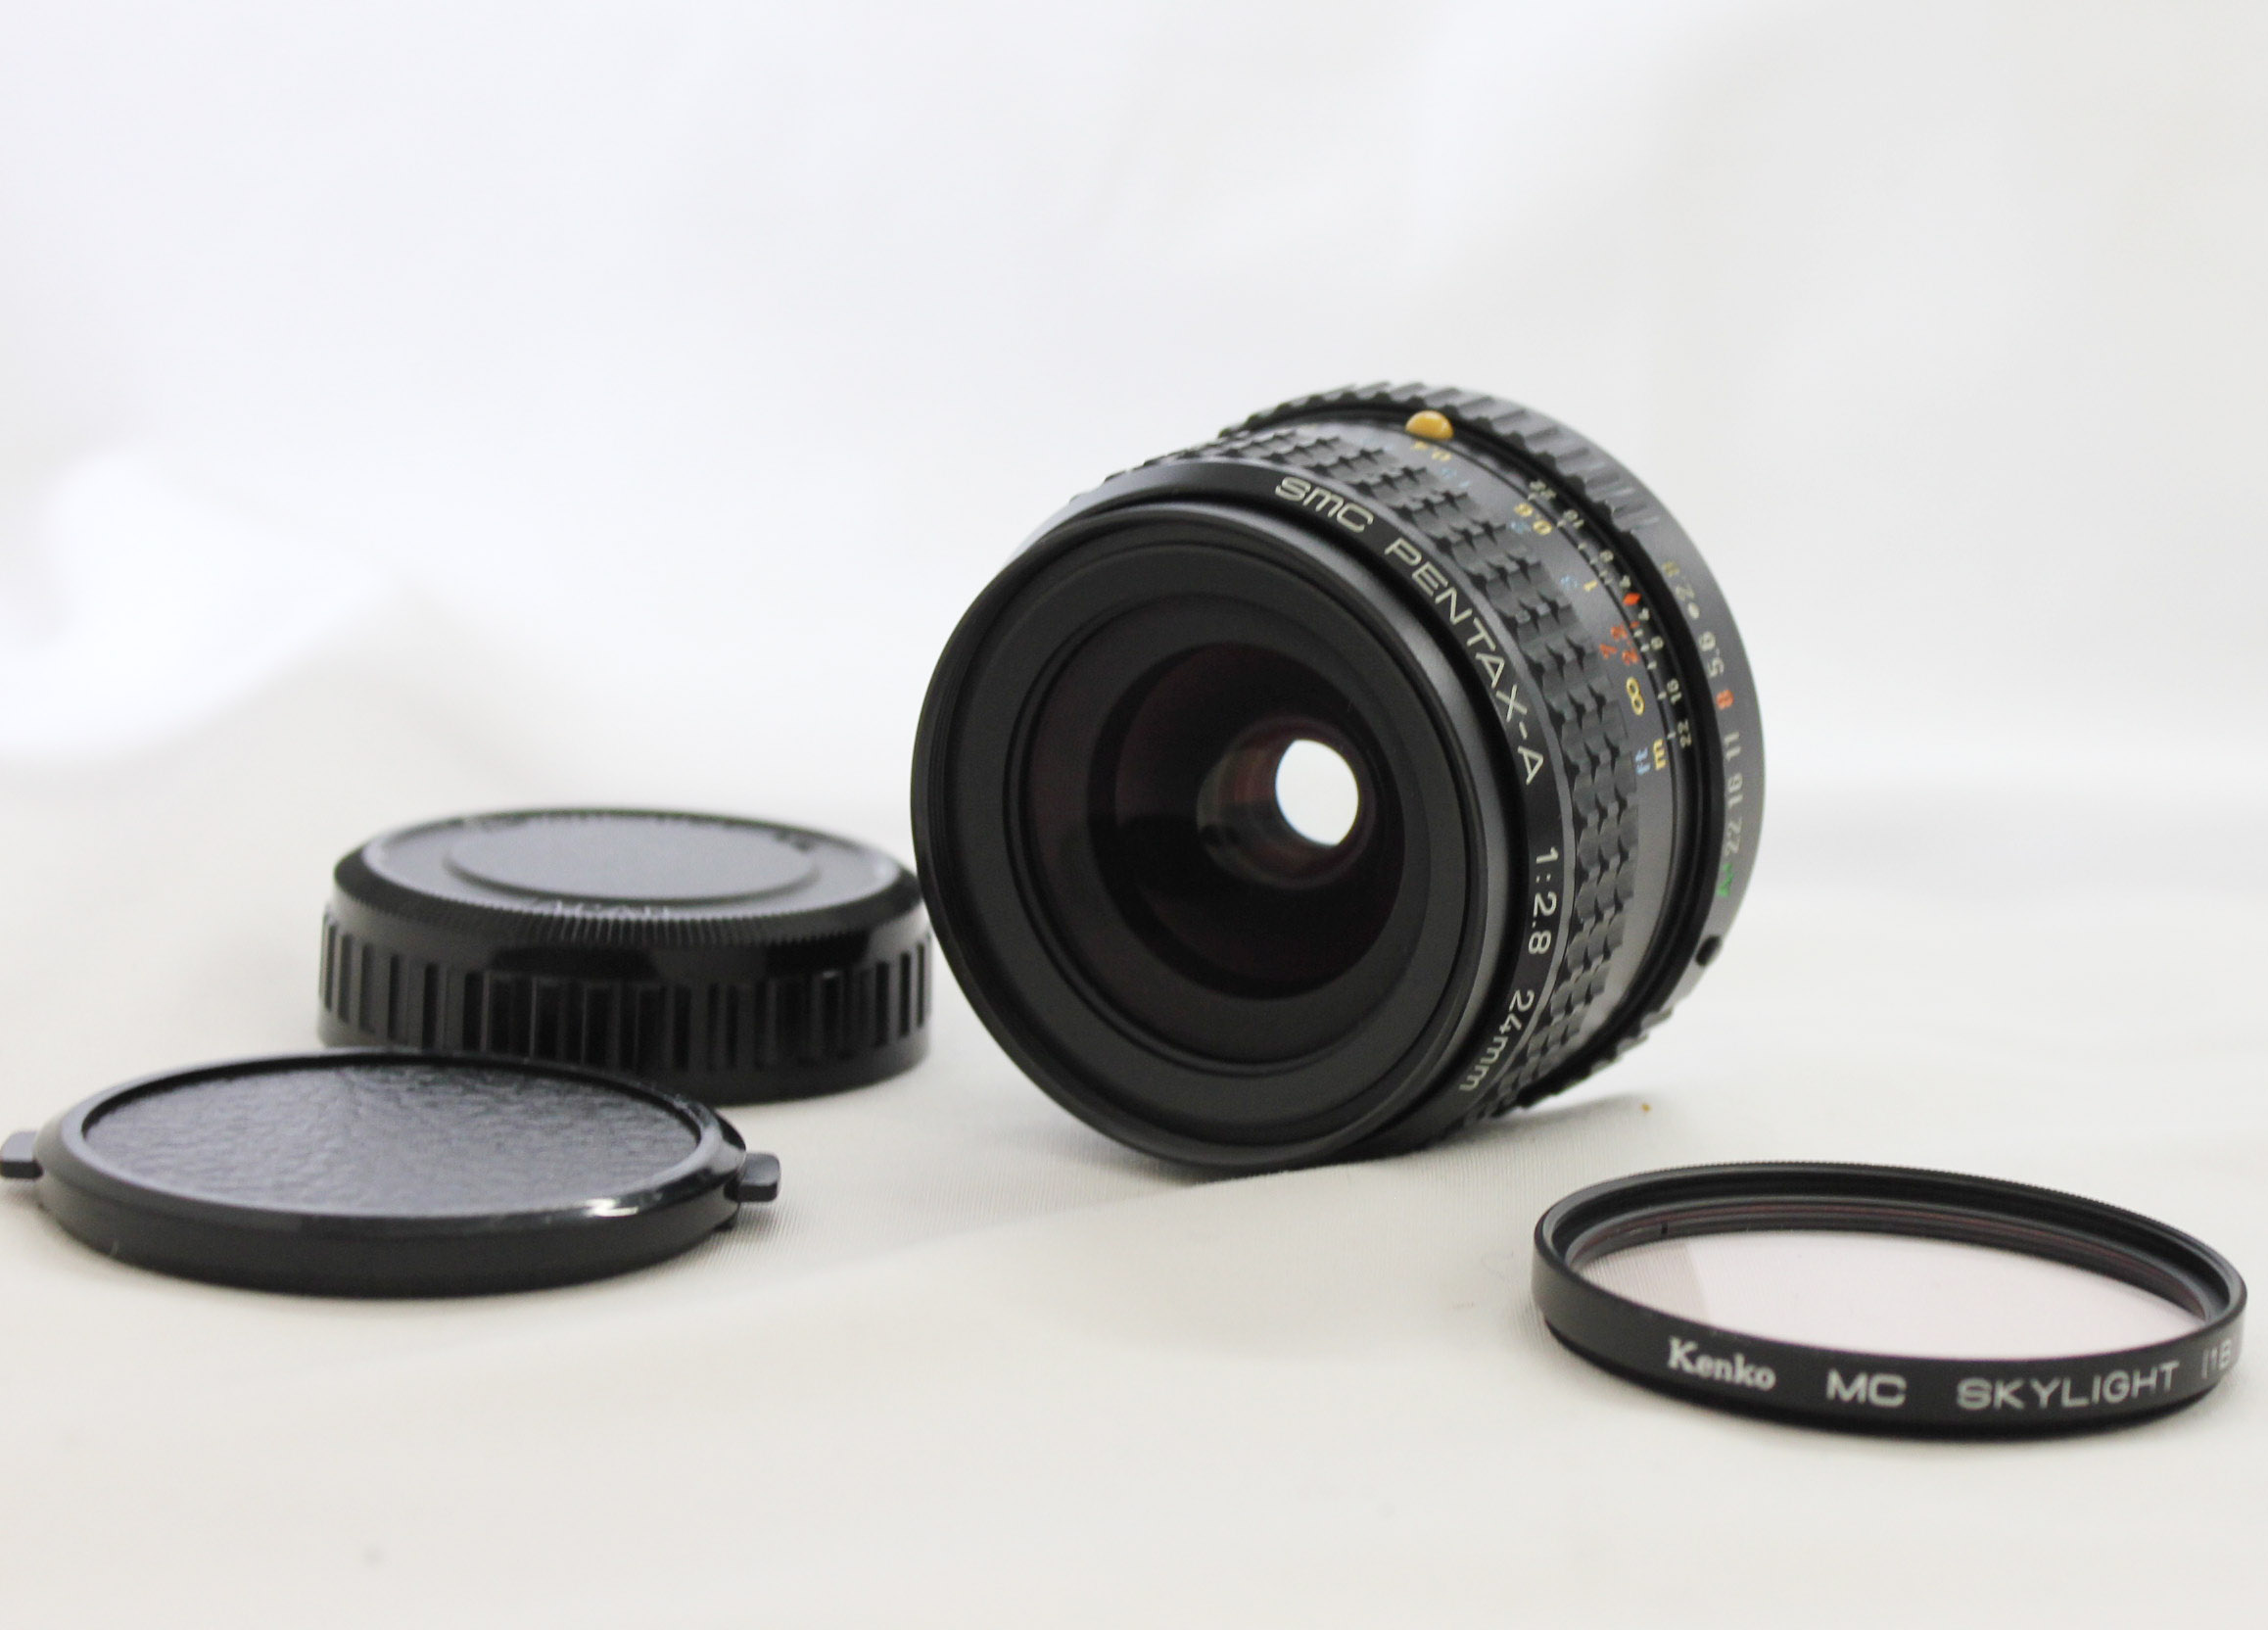 Japan Used Camera Shop | SMC Pentax-A 24mm F/2.8 MF Wide Angle K Mount Lens from Japan